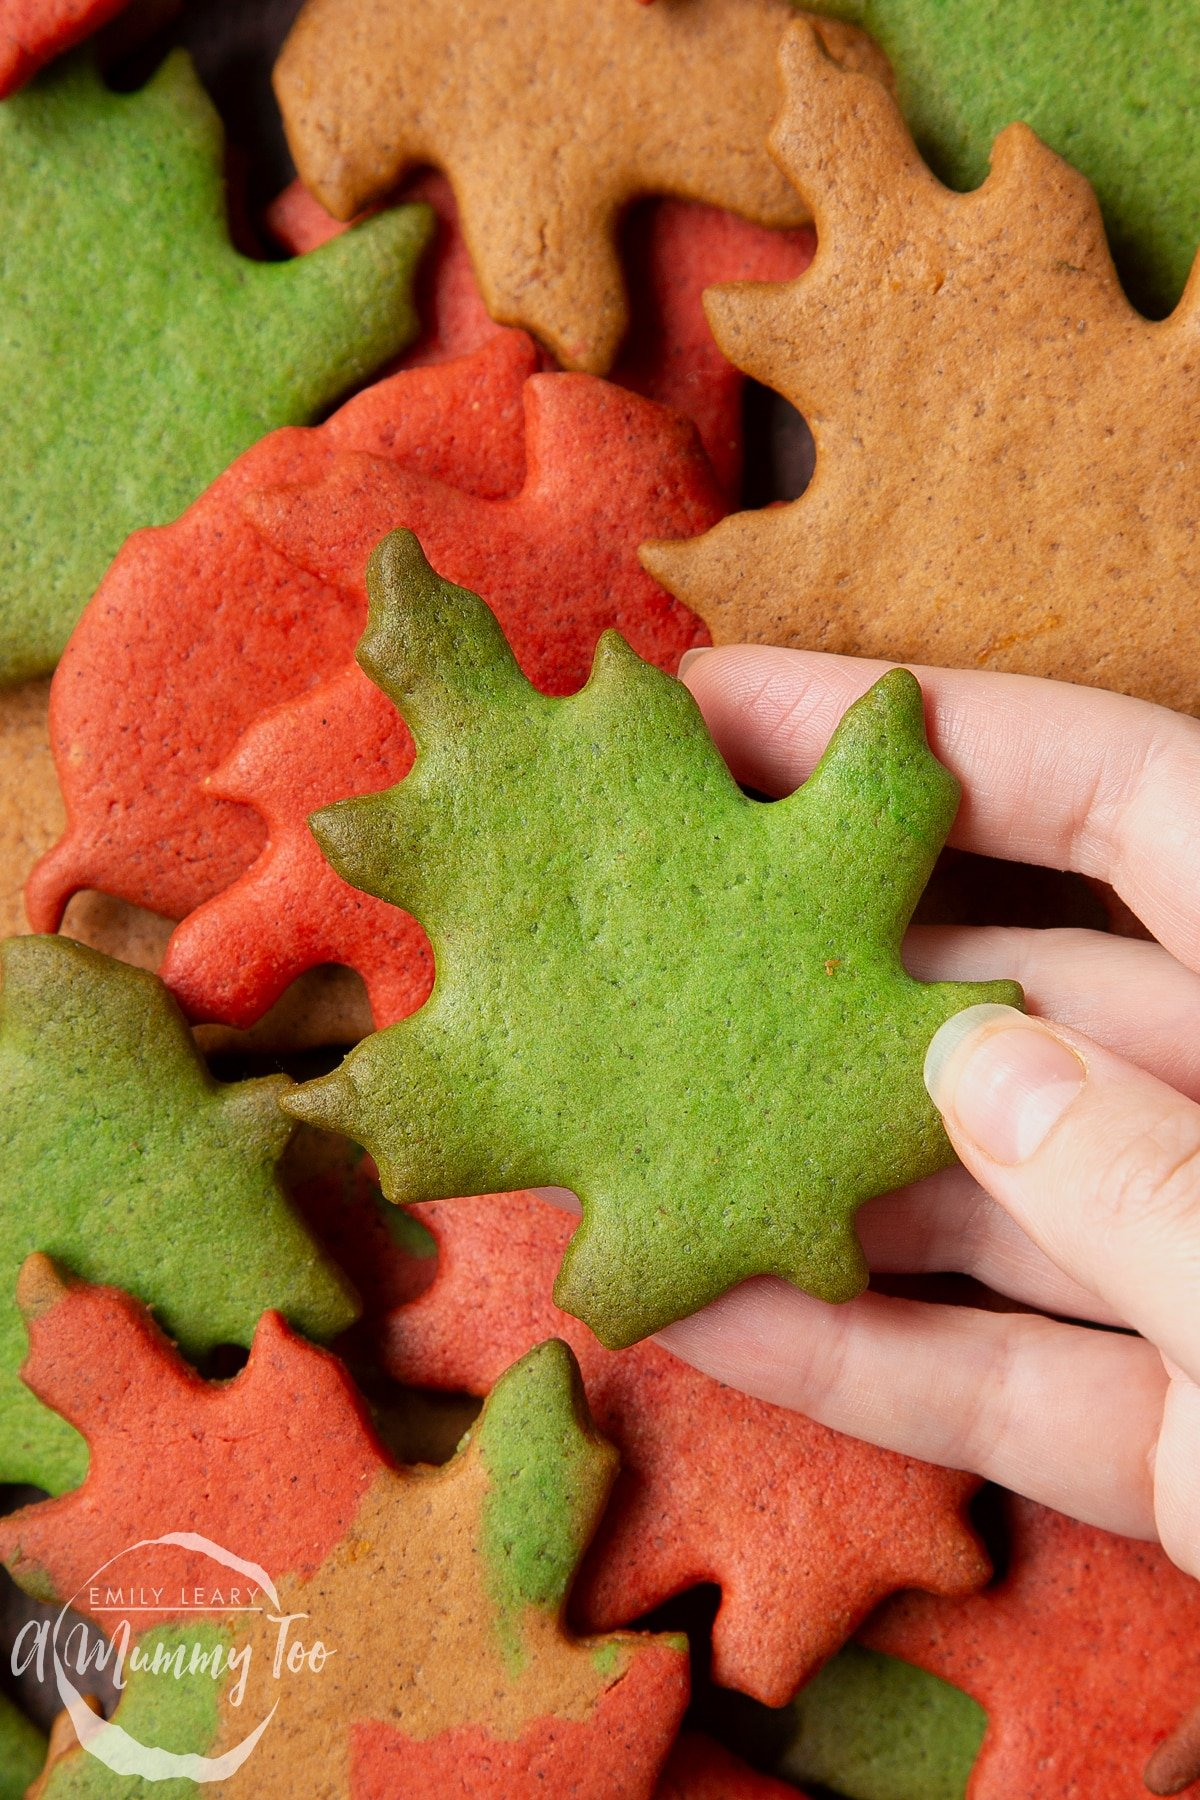 Hand holding a green autumn biscuits above a pile of colourful red, green and brown autumn cookies cut into the shapes of autumn leaves.